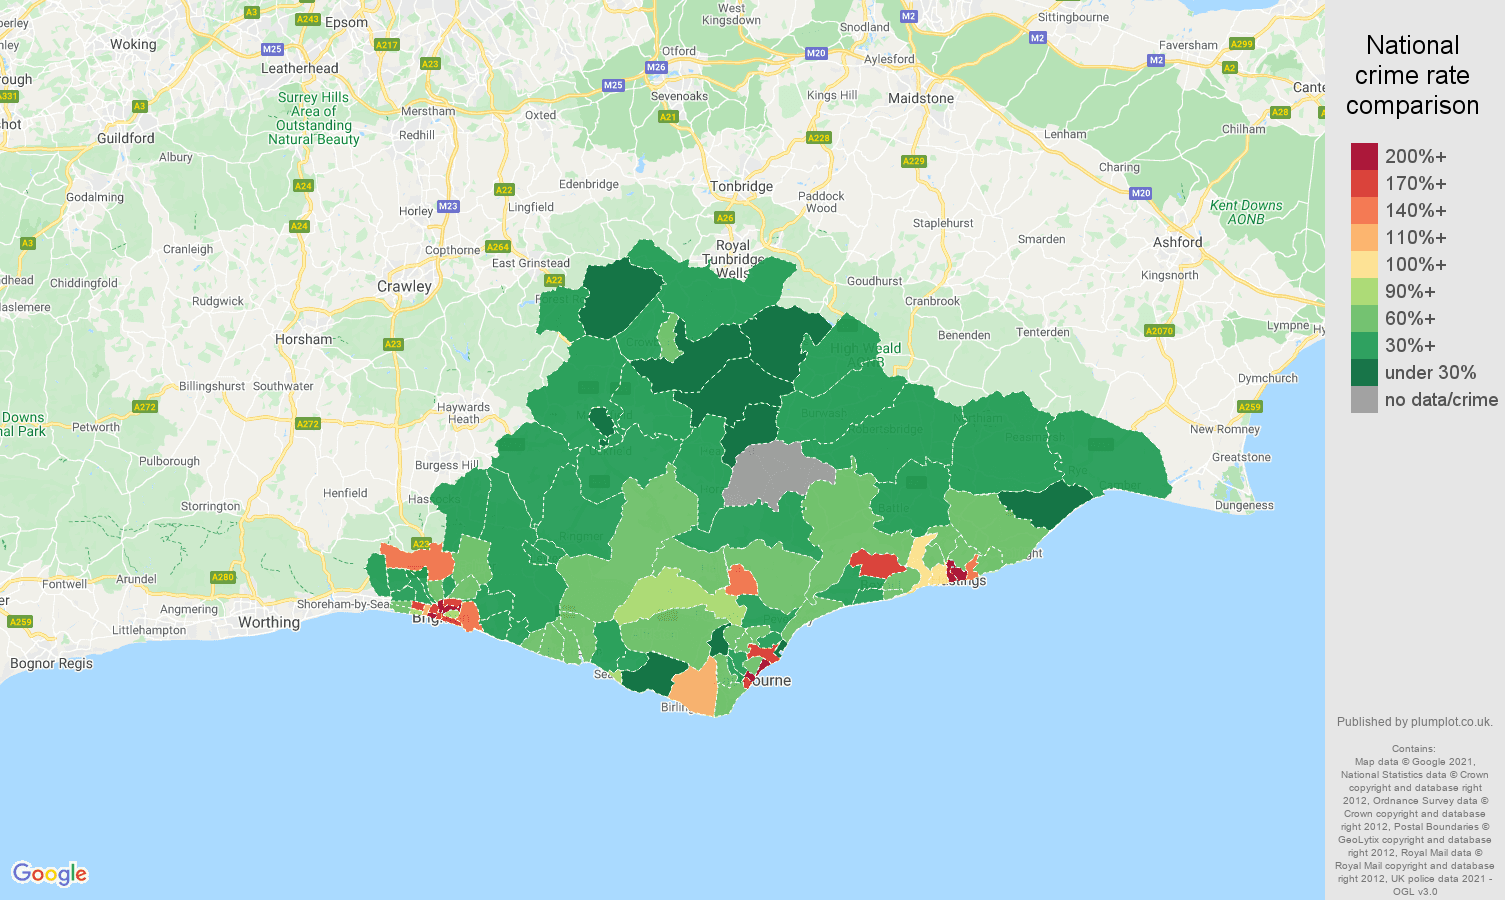 East Sussex drugs crime rate comparison map